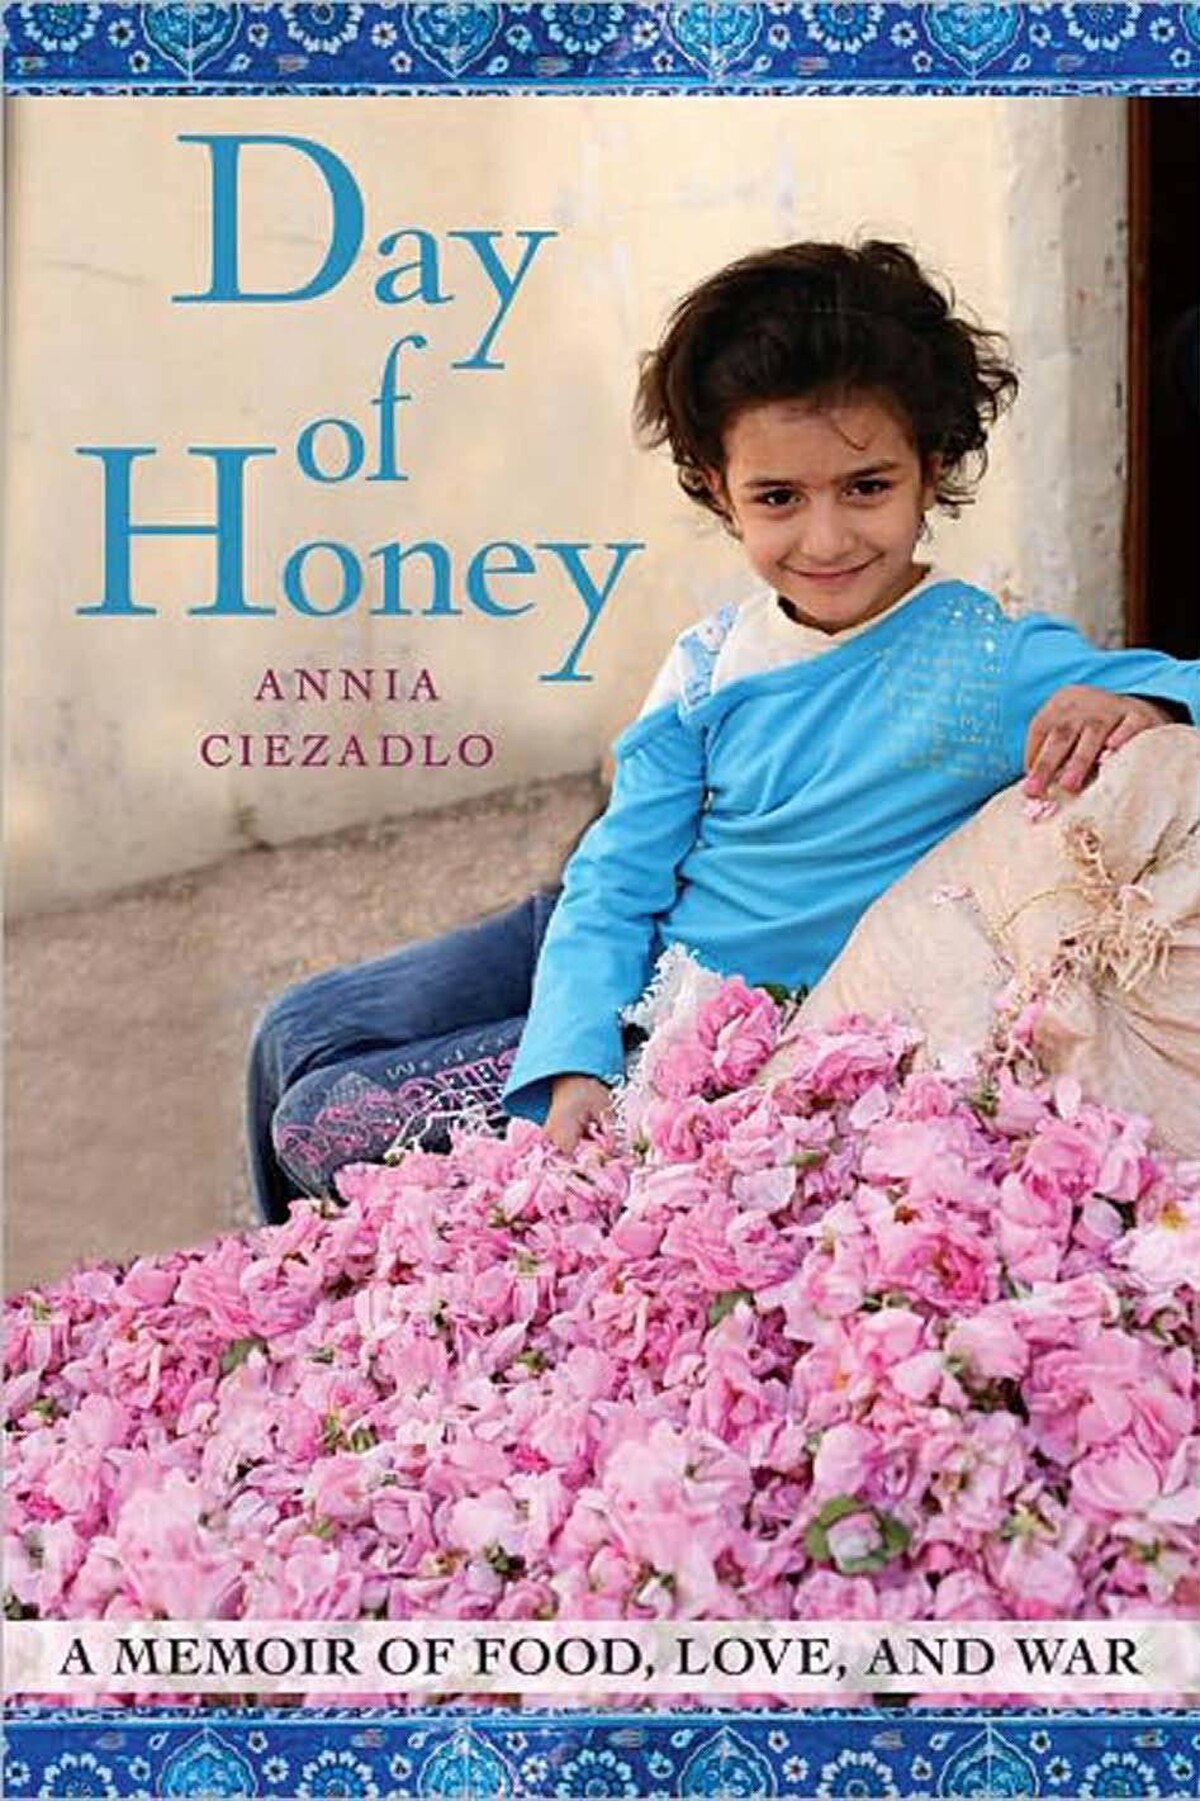 DAY OF HONEY A Memoir of Food, Love, and War By Annia Ciezadlo (Free Press) In her extraordinary debut, Ciezadlo turns food into a language, a set of signs and connections that helps tie together a complex, moving memoir. She interweaves her private story with portraits of memorable individuals and with shattering public events in Baghdad and Beirut. She does so with grace and skill, without sentimentality or simple generalizations. – Naomi Duguid